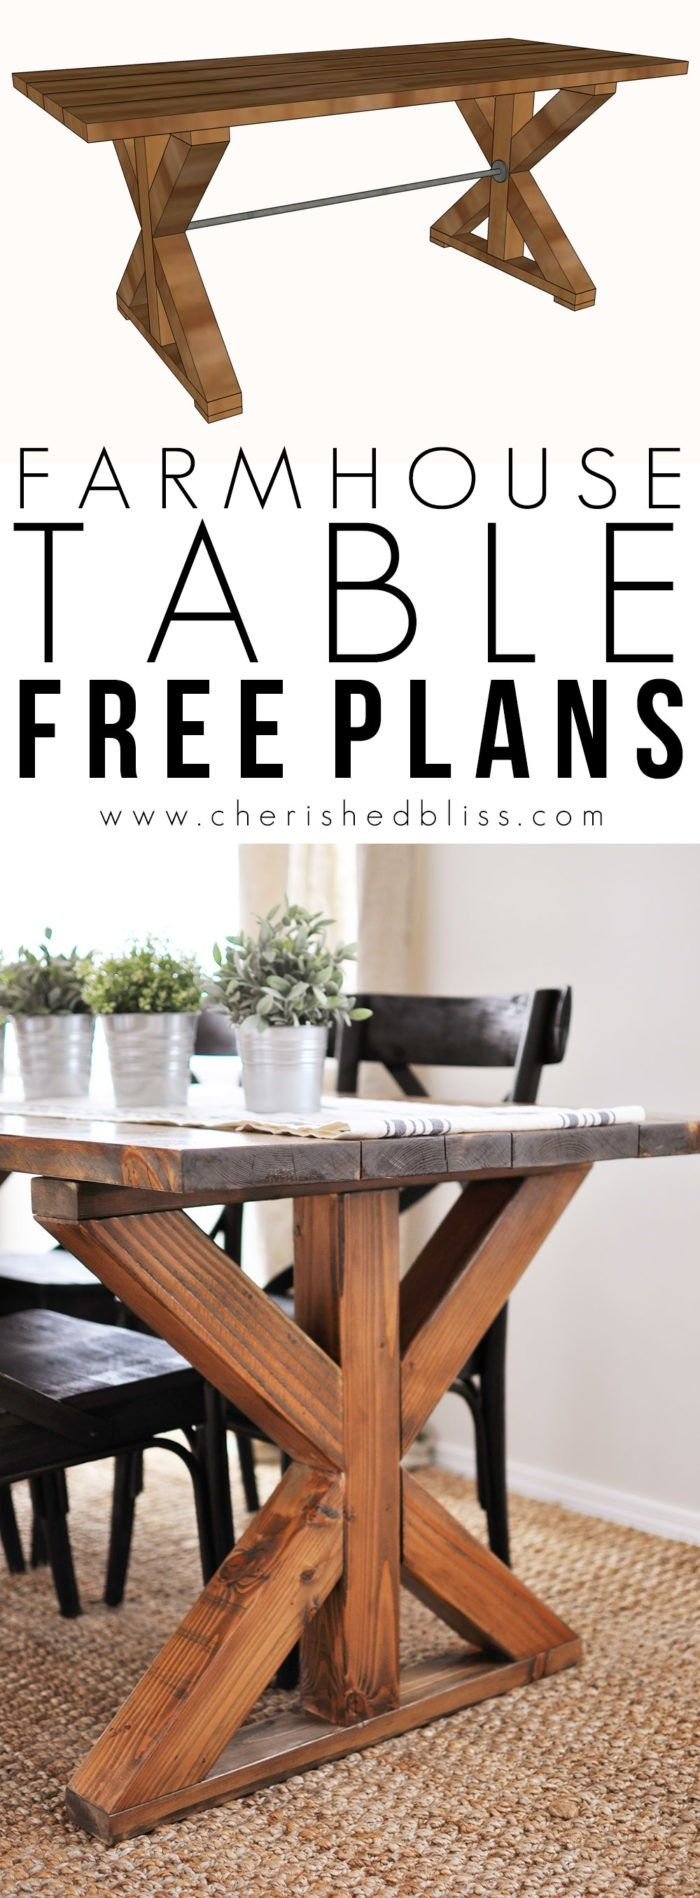 couch dining table murphy kitchen table 25 best ideas about Couch Dining Table on Pinterest Beach style dining benches Beach style table runners and Farm style dining table